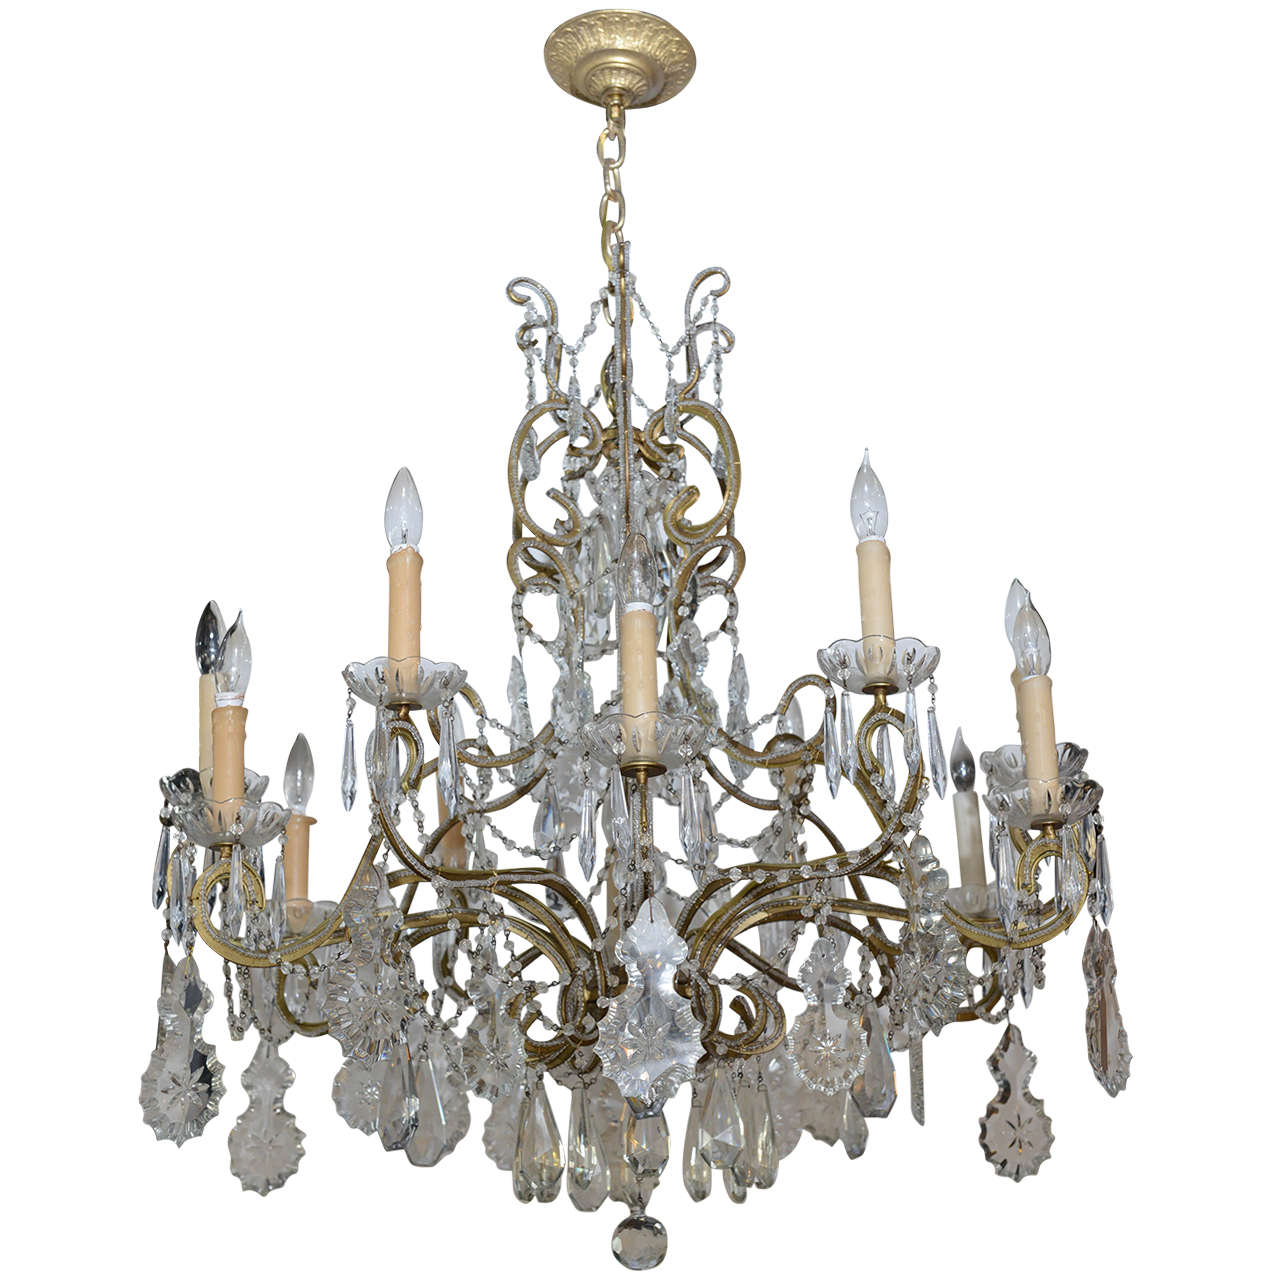 Vintage crystal chandelier for sale at 1stdibs - Chandeliers on sale online ...